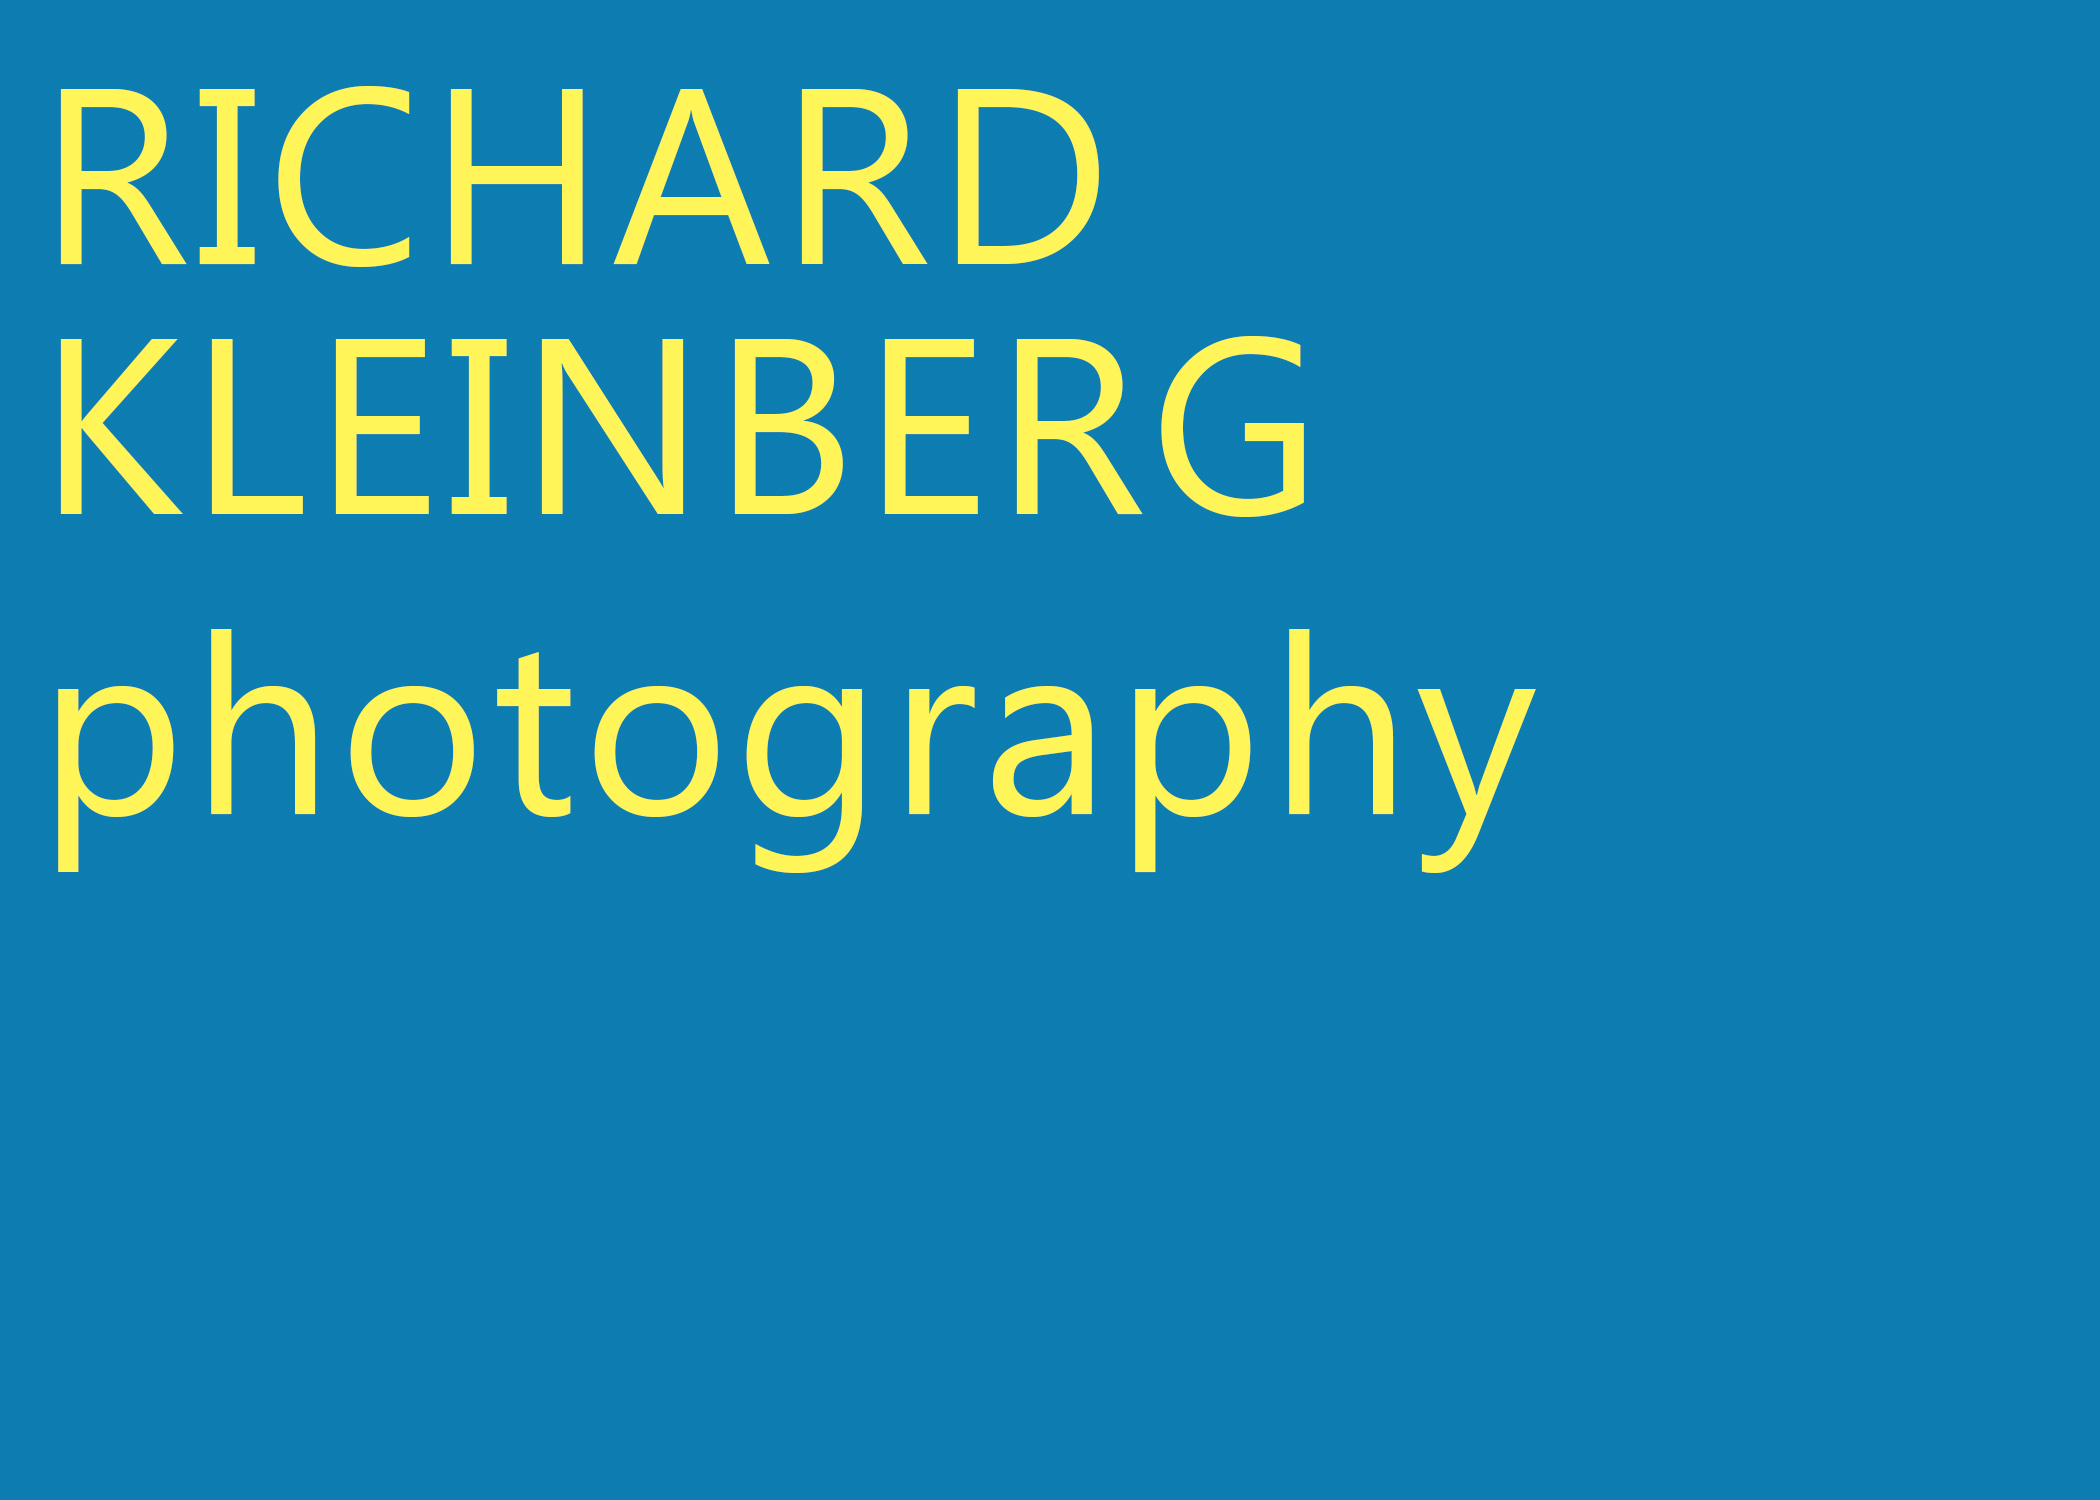 Richard Kleinberg